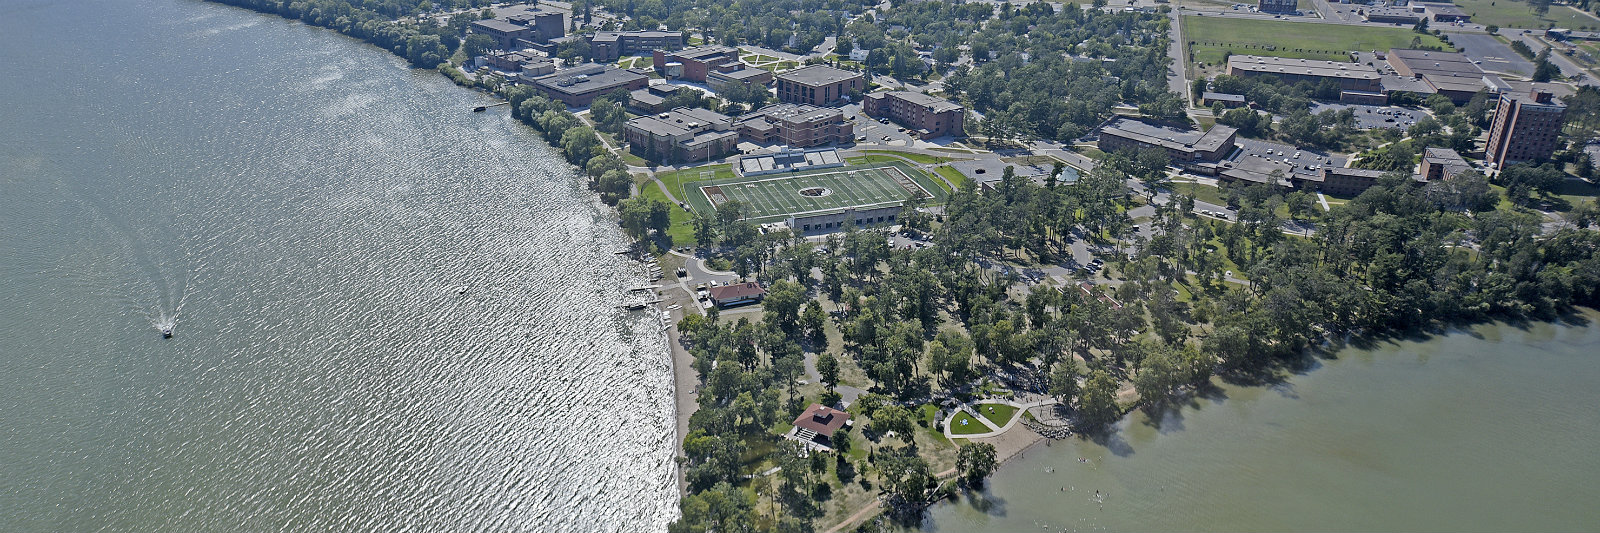 Aerial View of Bemidji